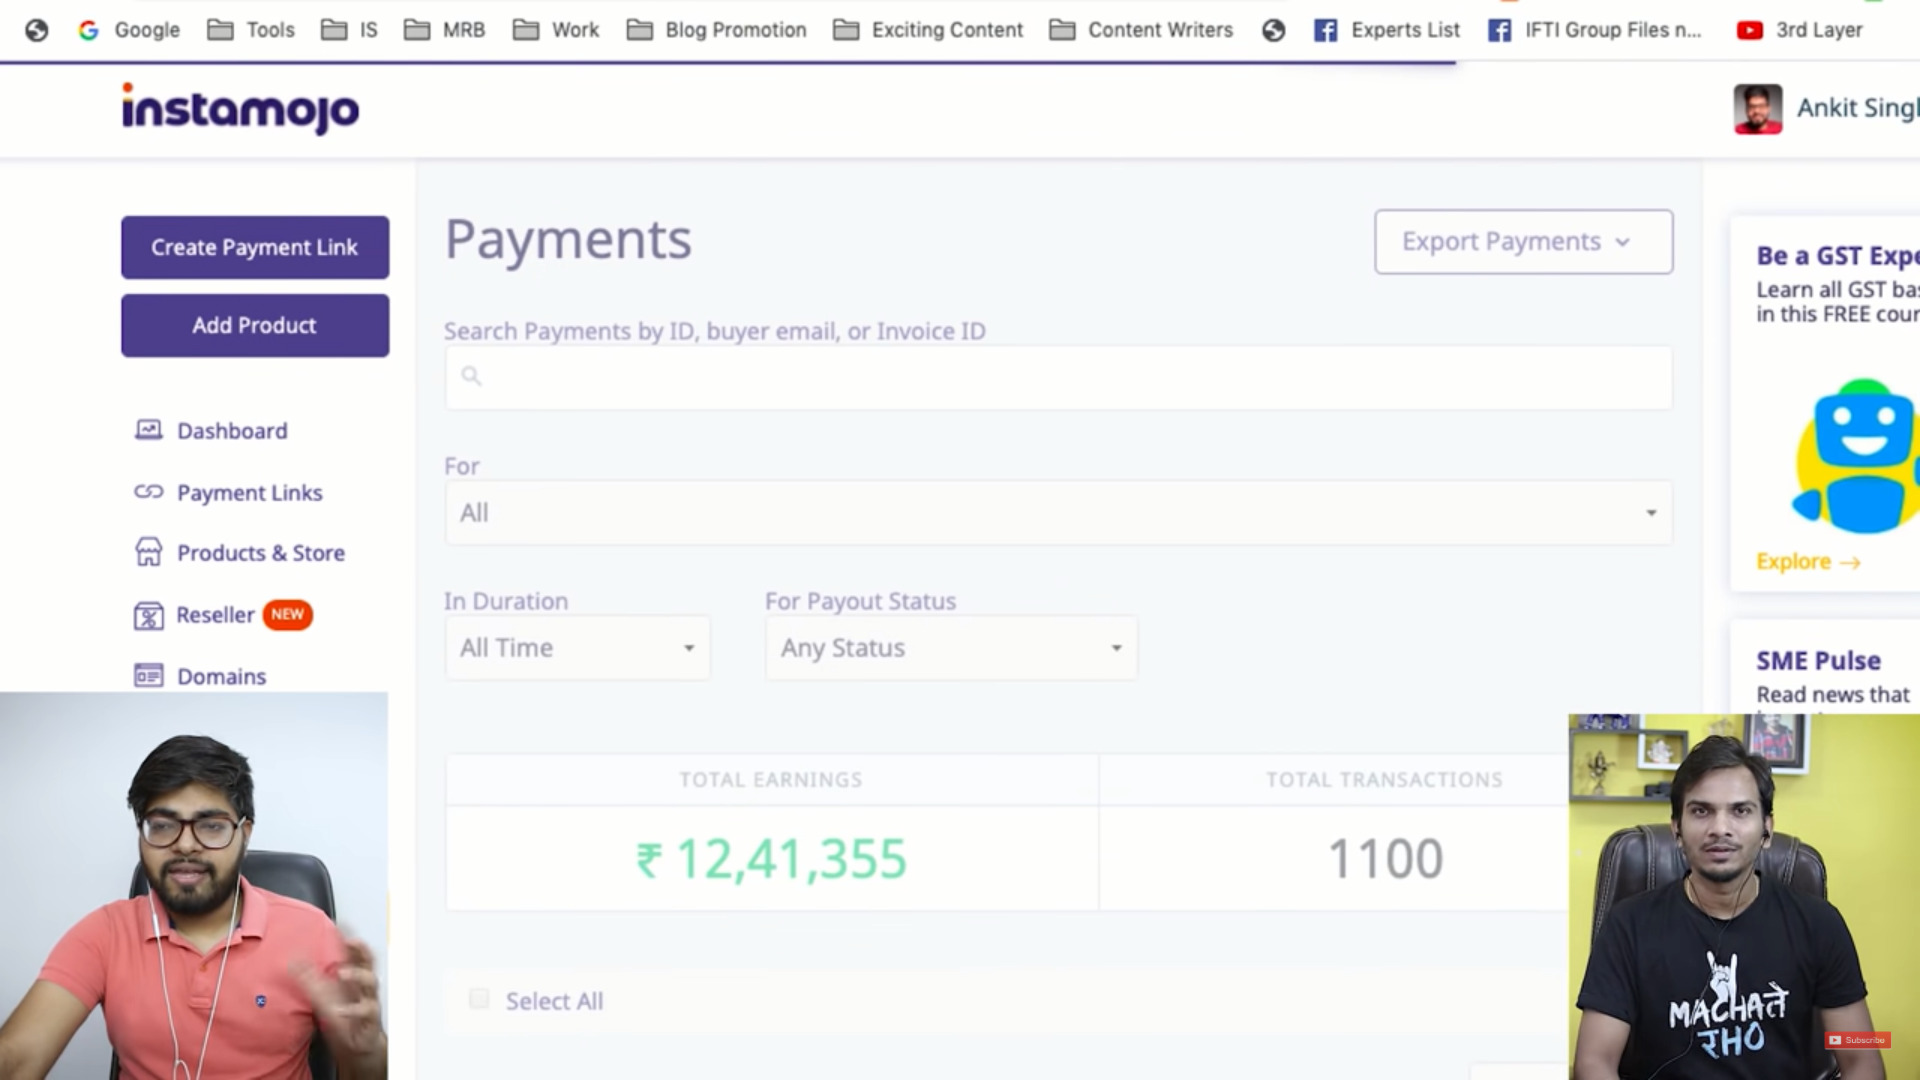 Master Blogging Income Report Reveal By Ankit Singla (Kitna Kamate Hain Per Month Reveal By Ankit Singla)